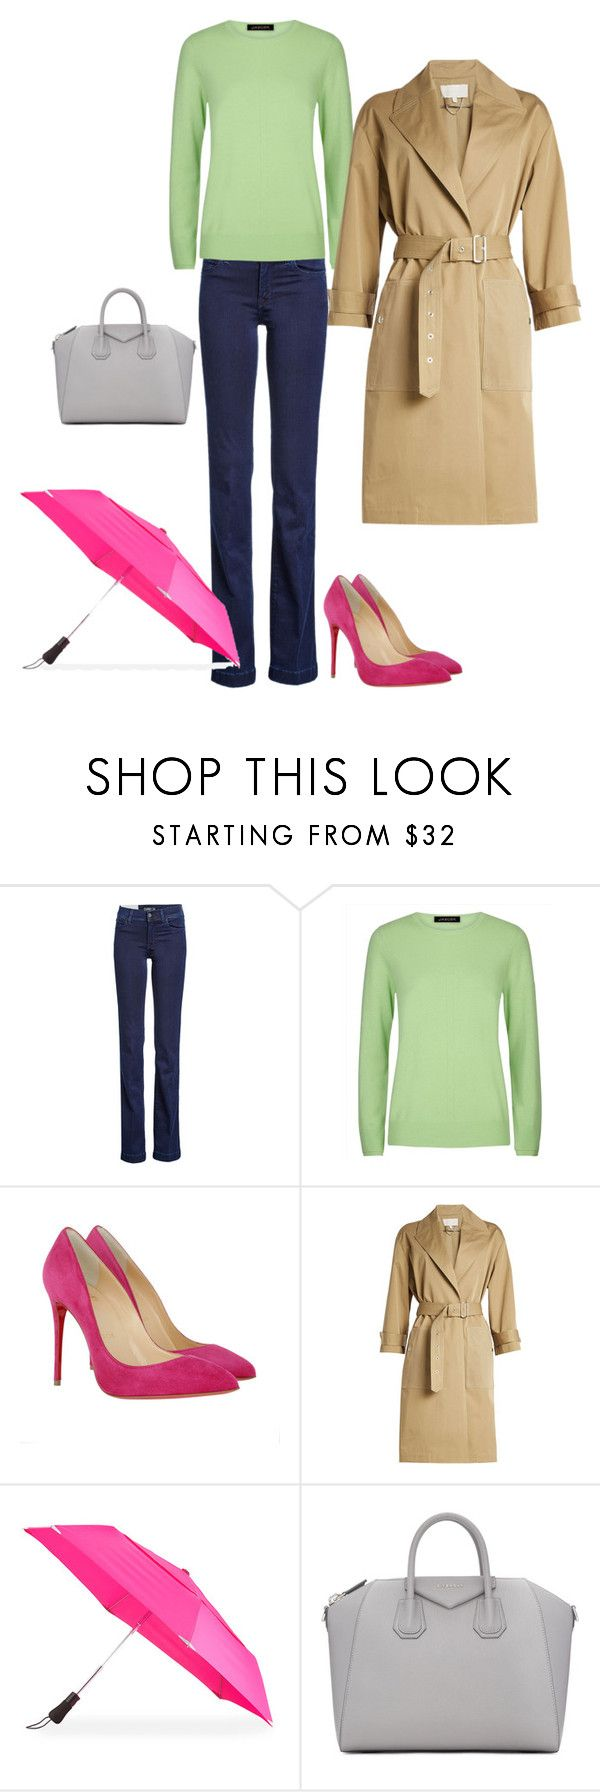 6 by asvetik on Polyvore featuring мода, Jaeger, Vanessa Bruno, 7 For All Mankind, Christian Louboutin, Givenchy and ShedRain